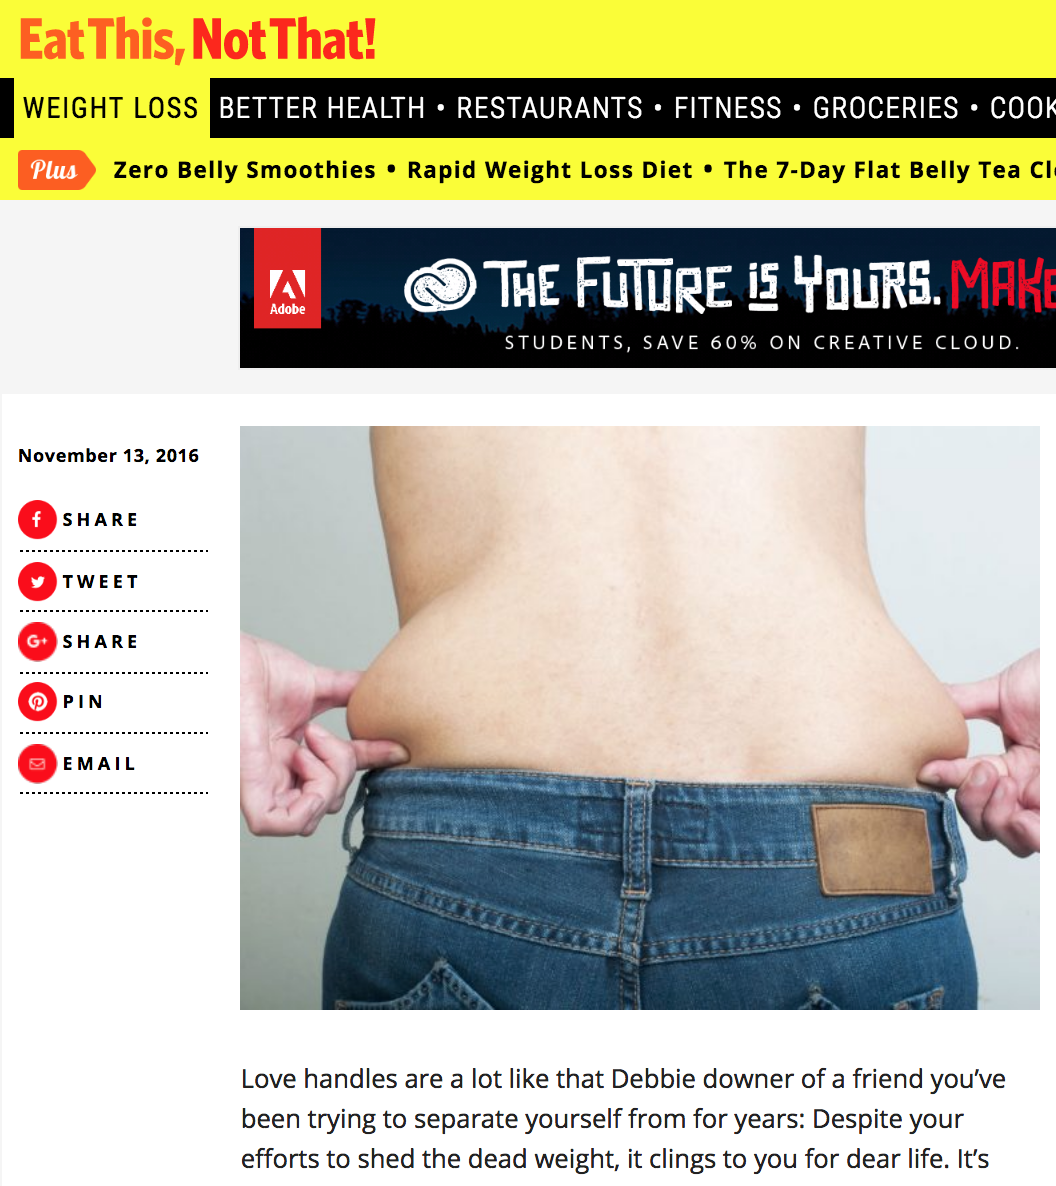 16 Reasons You Can't Get Rid of Your Love Handles - via EatThis.com